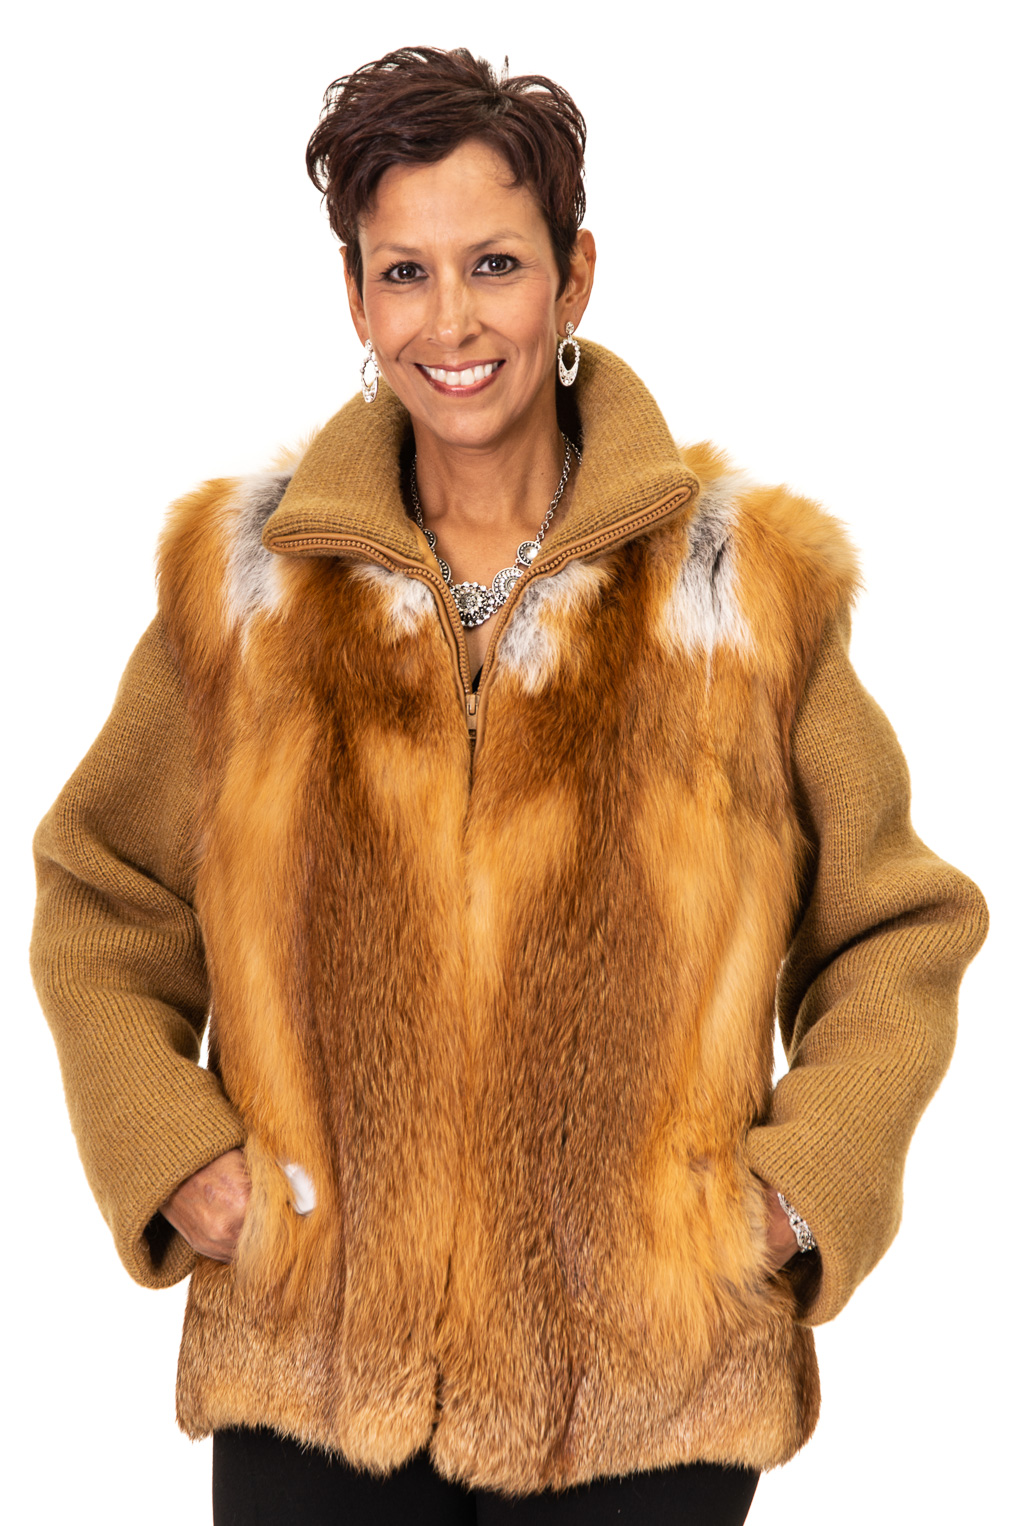 157 2 Red Fox Ugent Furs